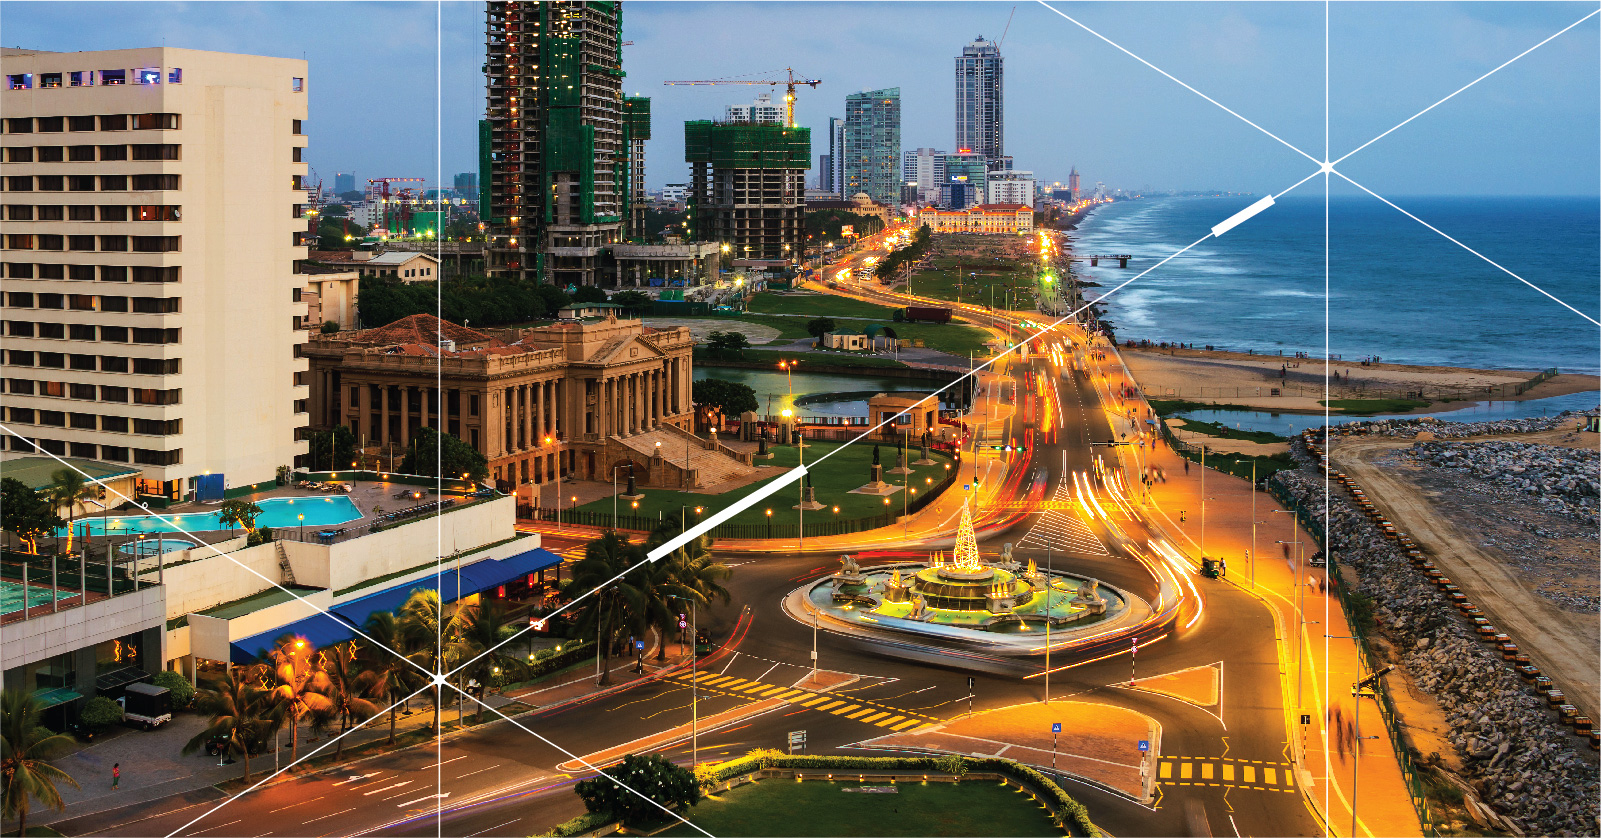 Flashnet paves the way for the development of a smart street lighting system in Sri Lanka